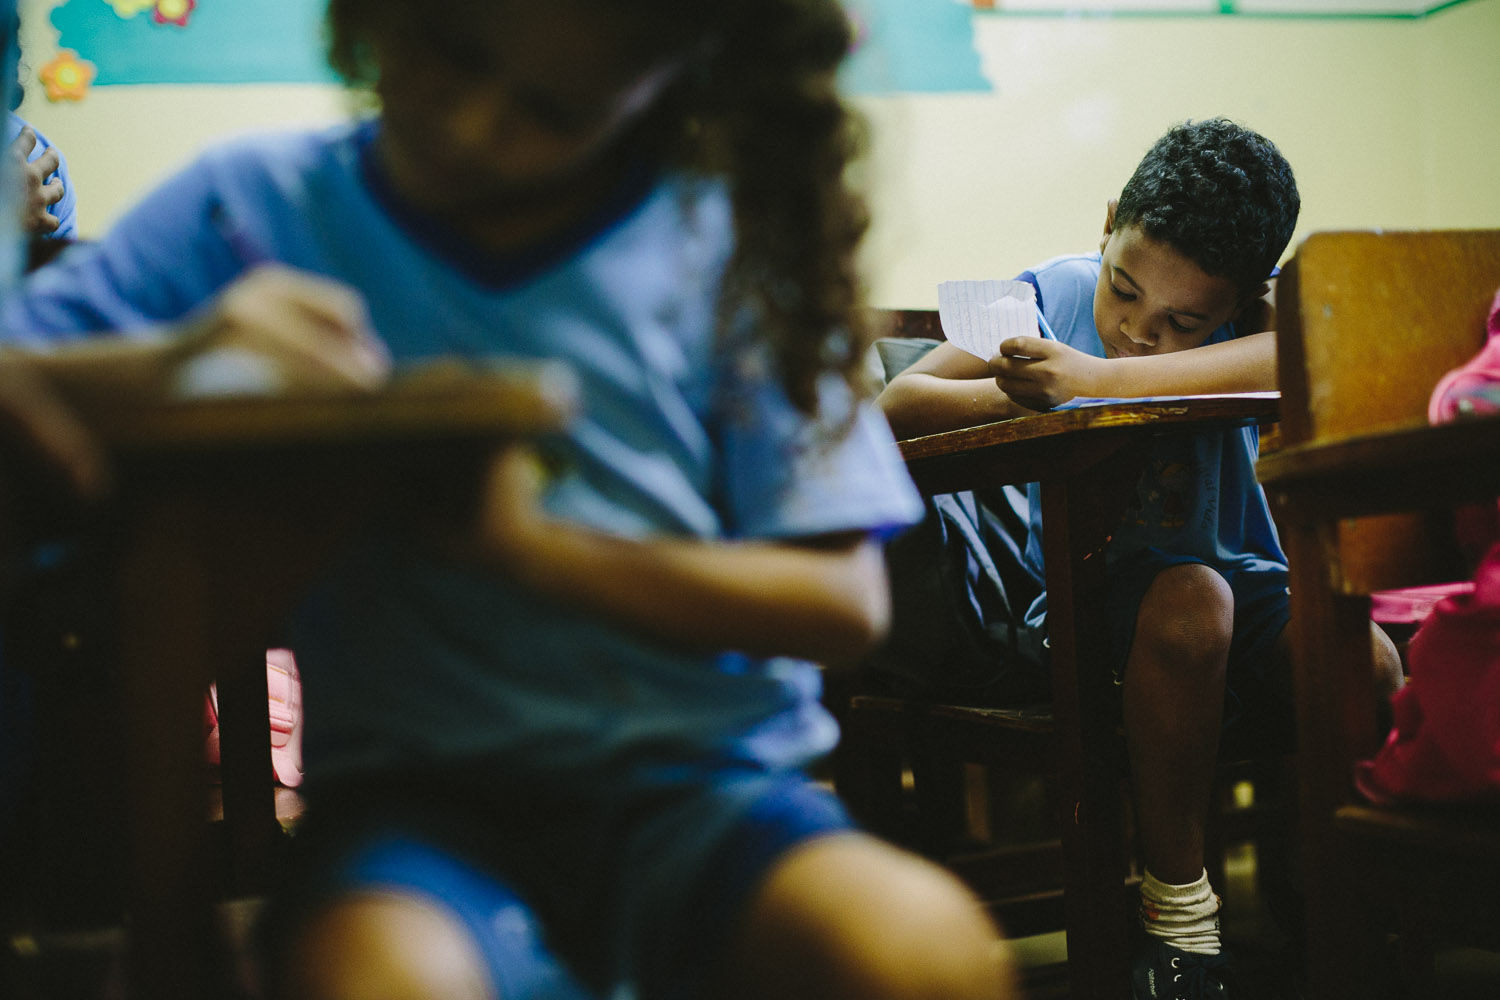 Emidio enjoys learning and is focused and generally a good student. Emidio during classes at the Compassion Center.